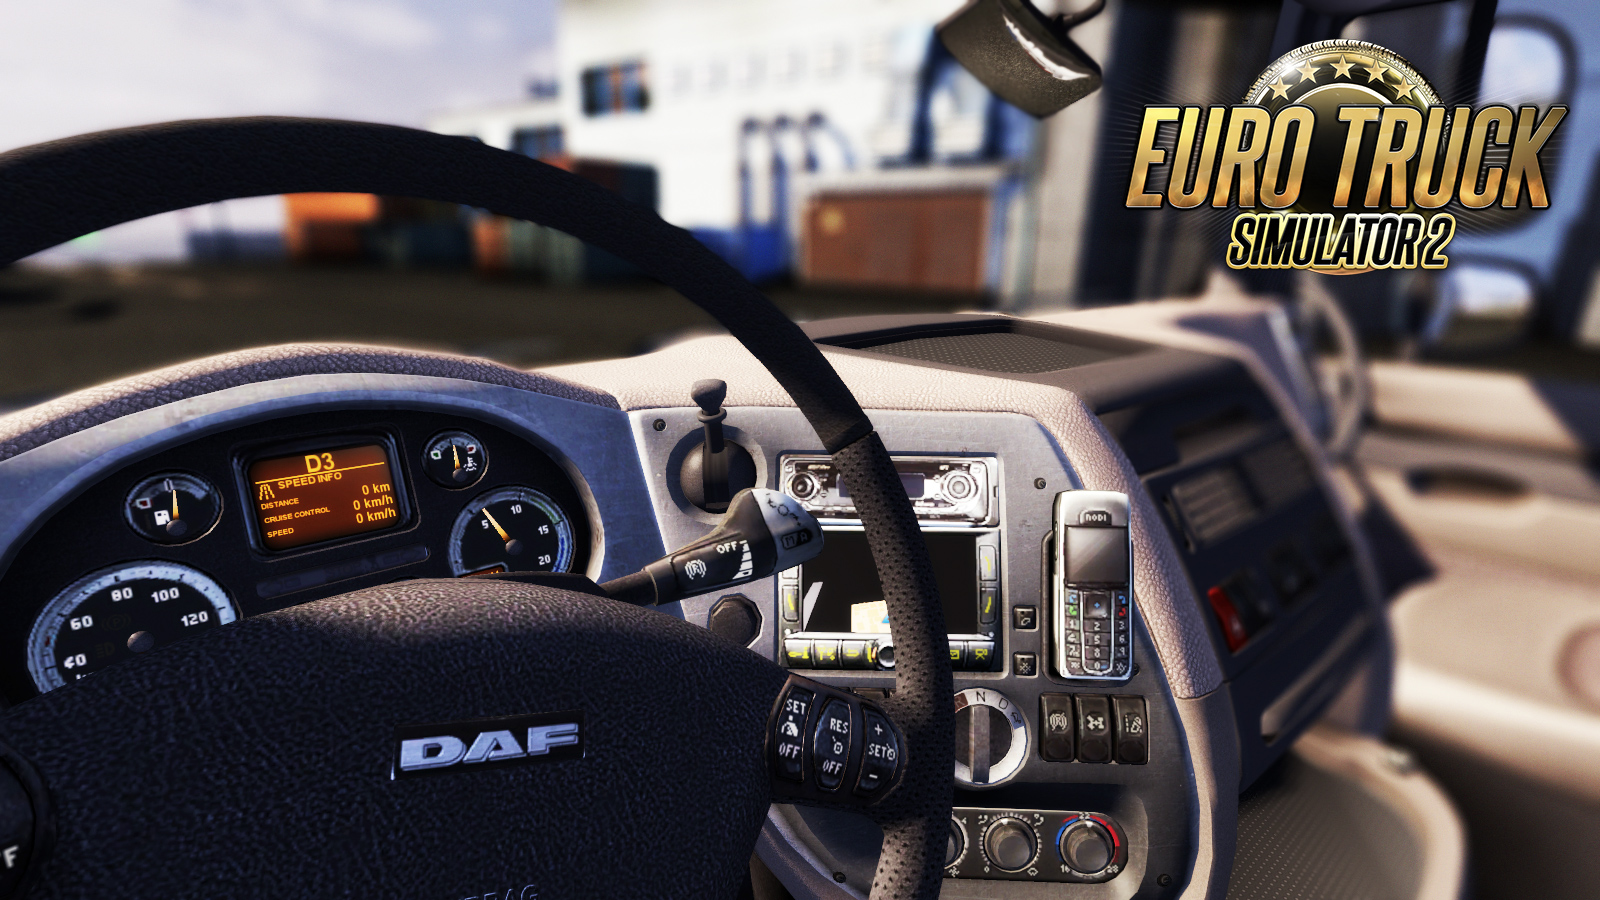 Ets 2.0 trading system free download